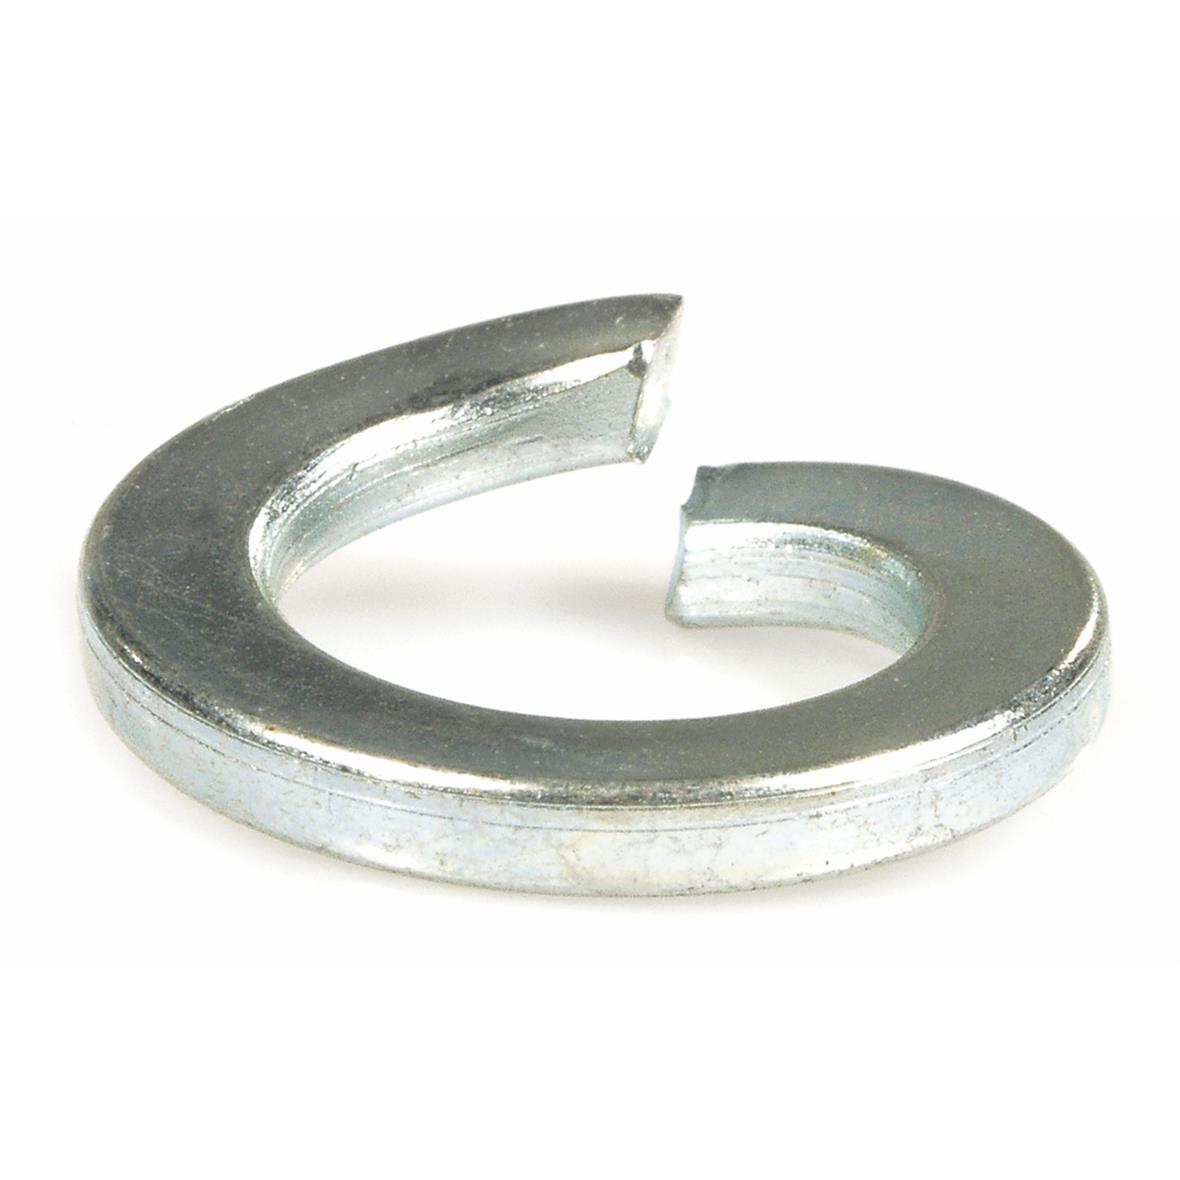 Product Image for 'Spring Washer brake arm M6 mm Ø 6,1x11,8 mm (th) 1,6mmTitle'